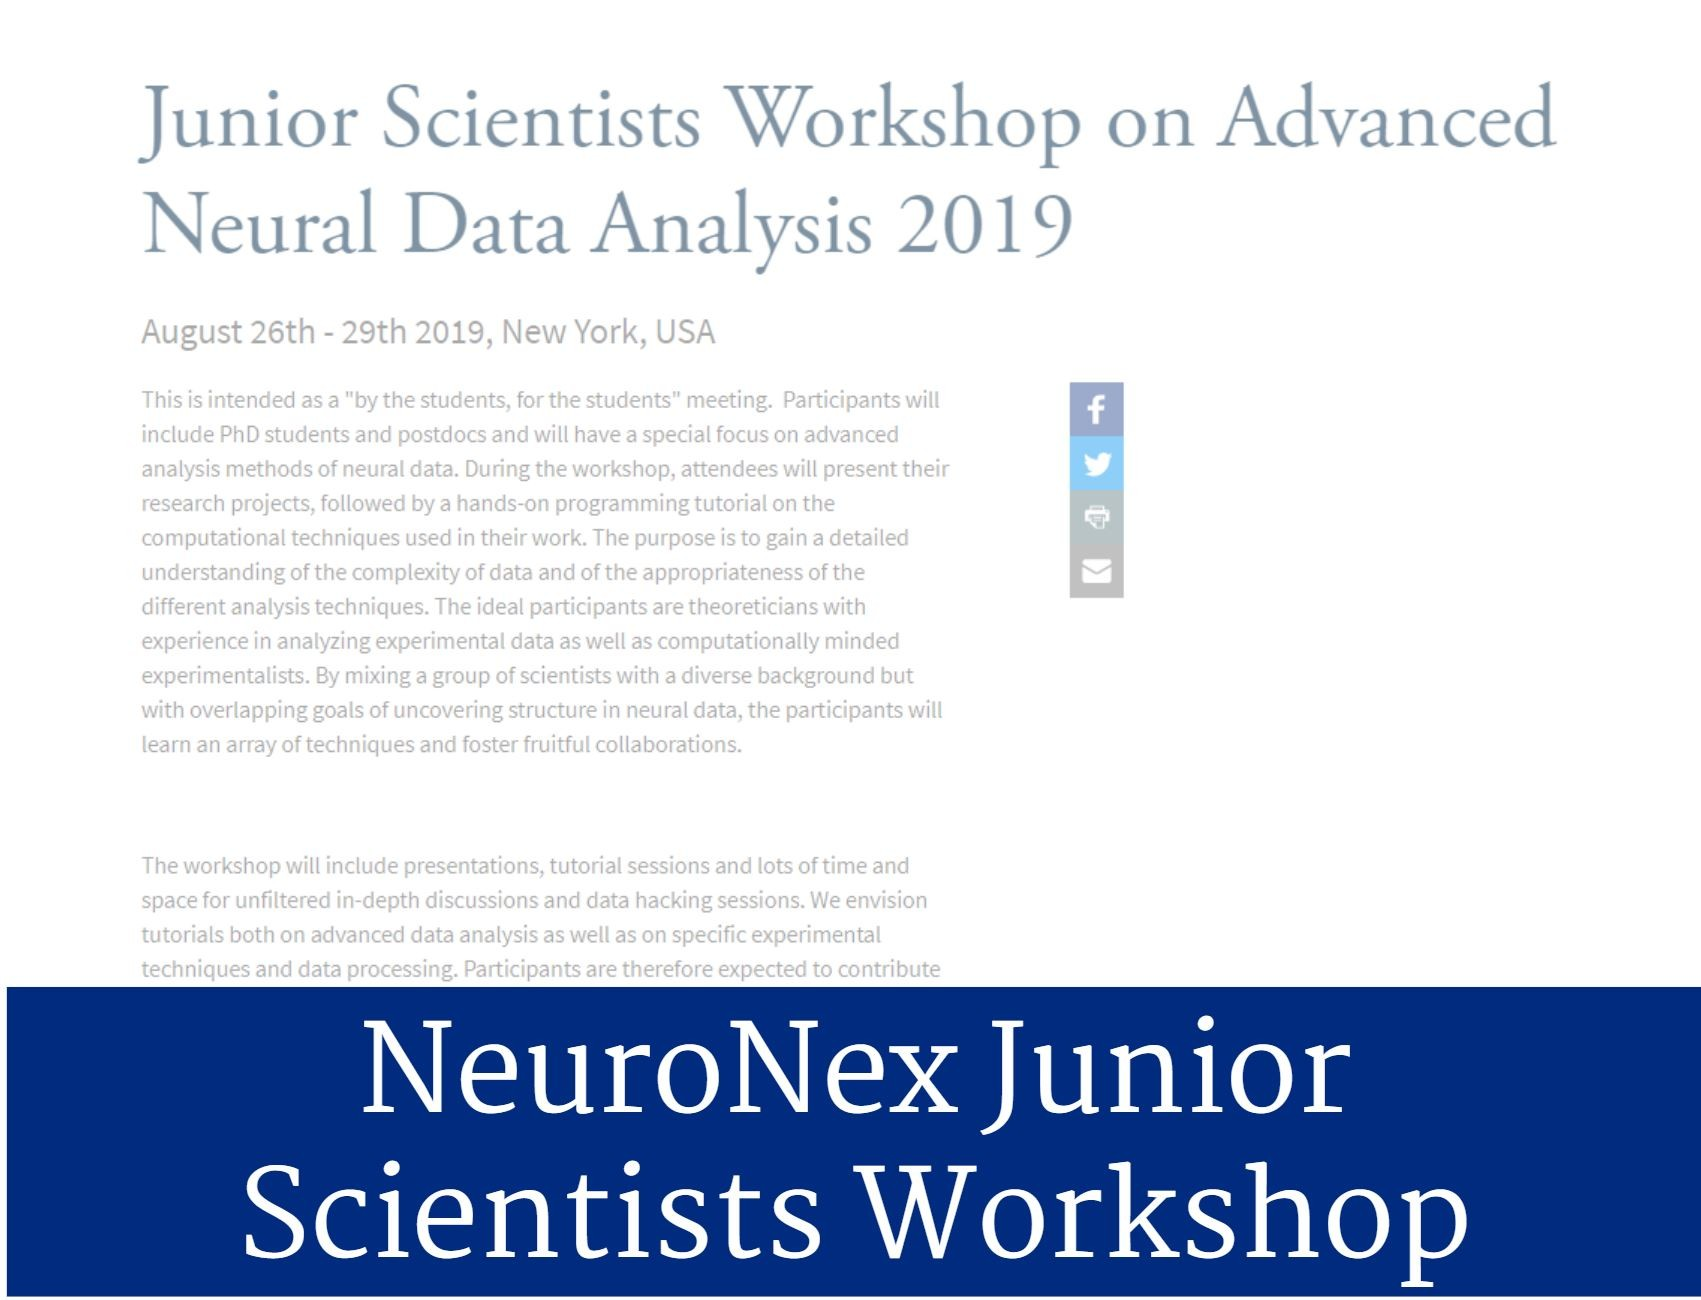 NeuroNex Junior Scientists Workshop